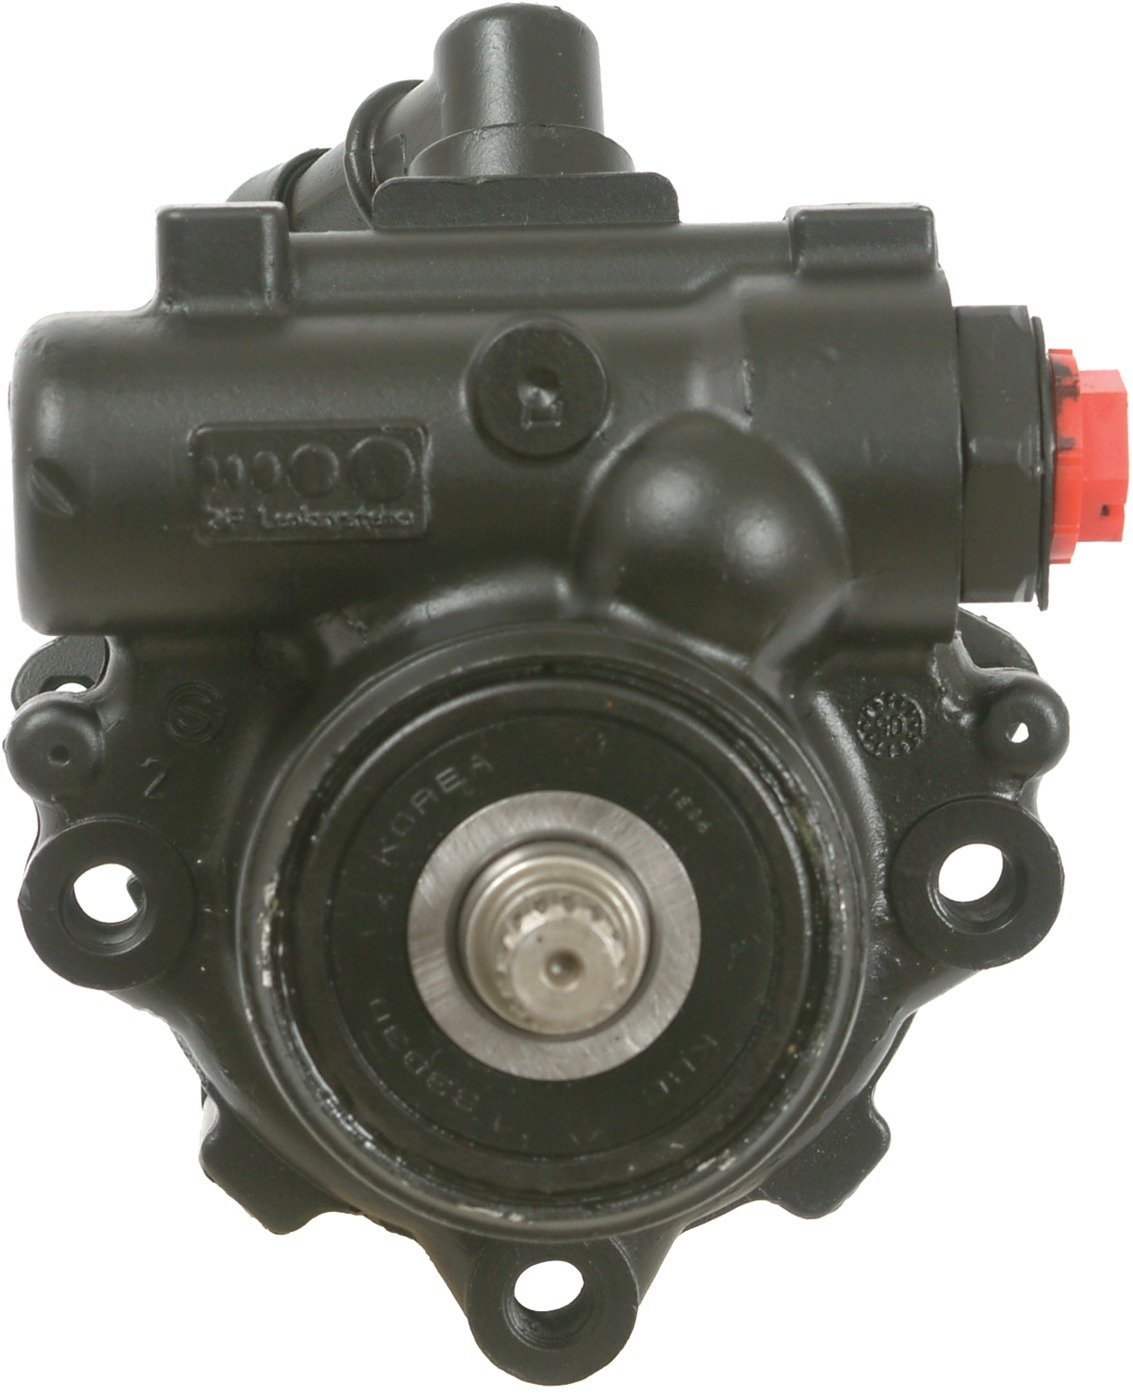 Cardone 21-5190 Remanufactured Import Power Steering Pump A1 Cardone